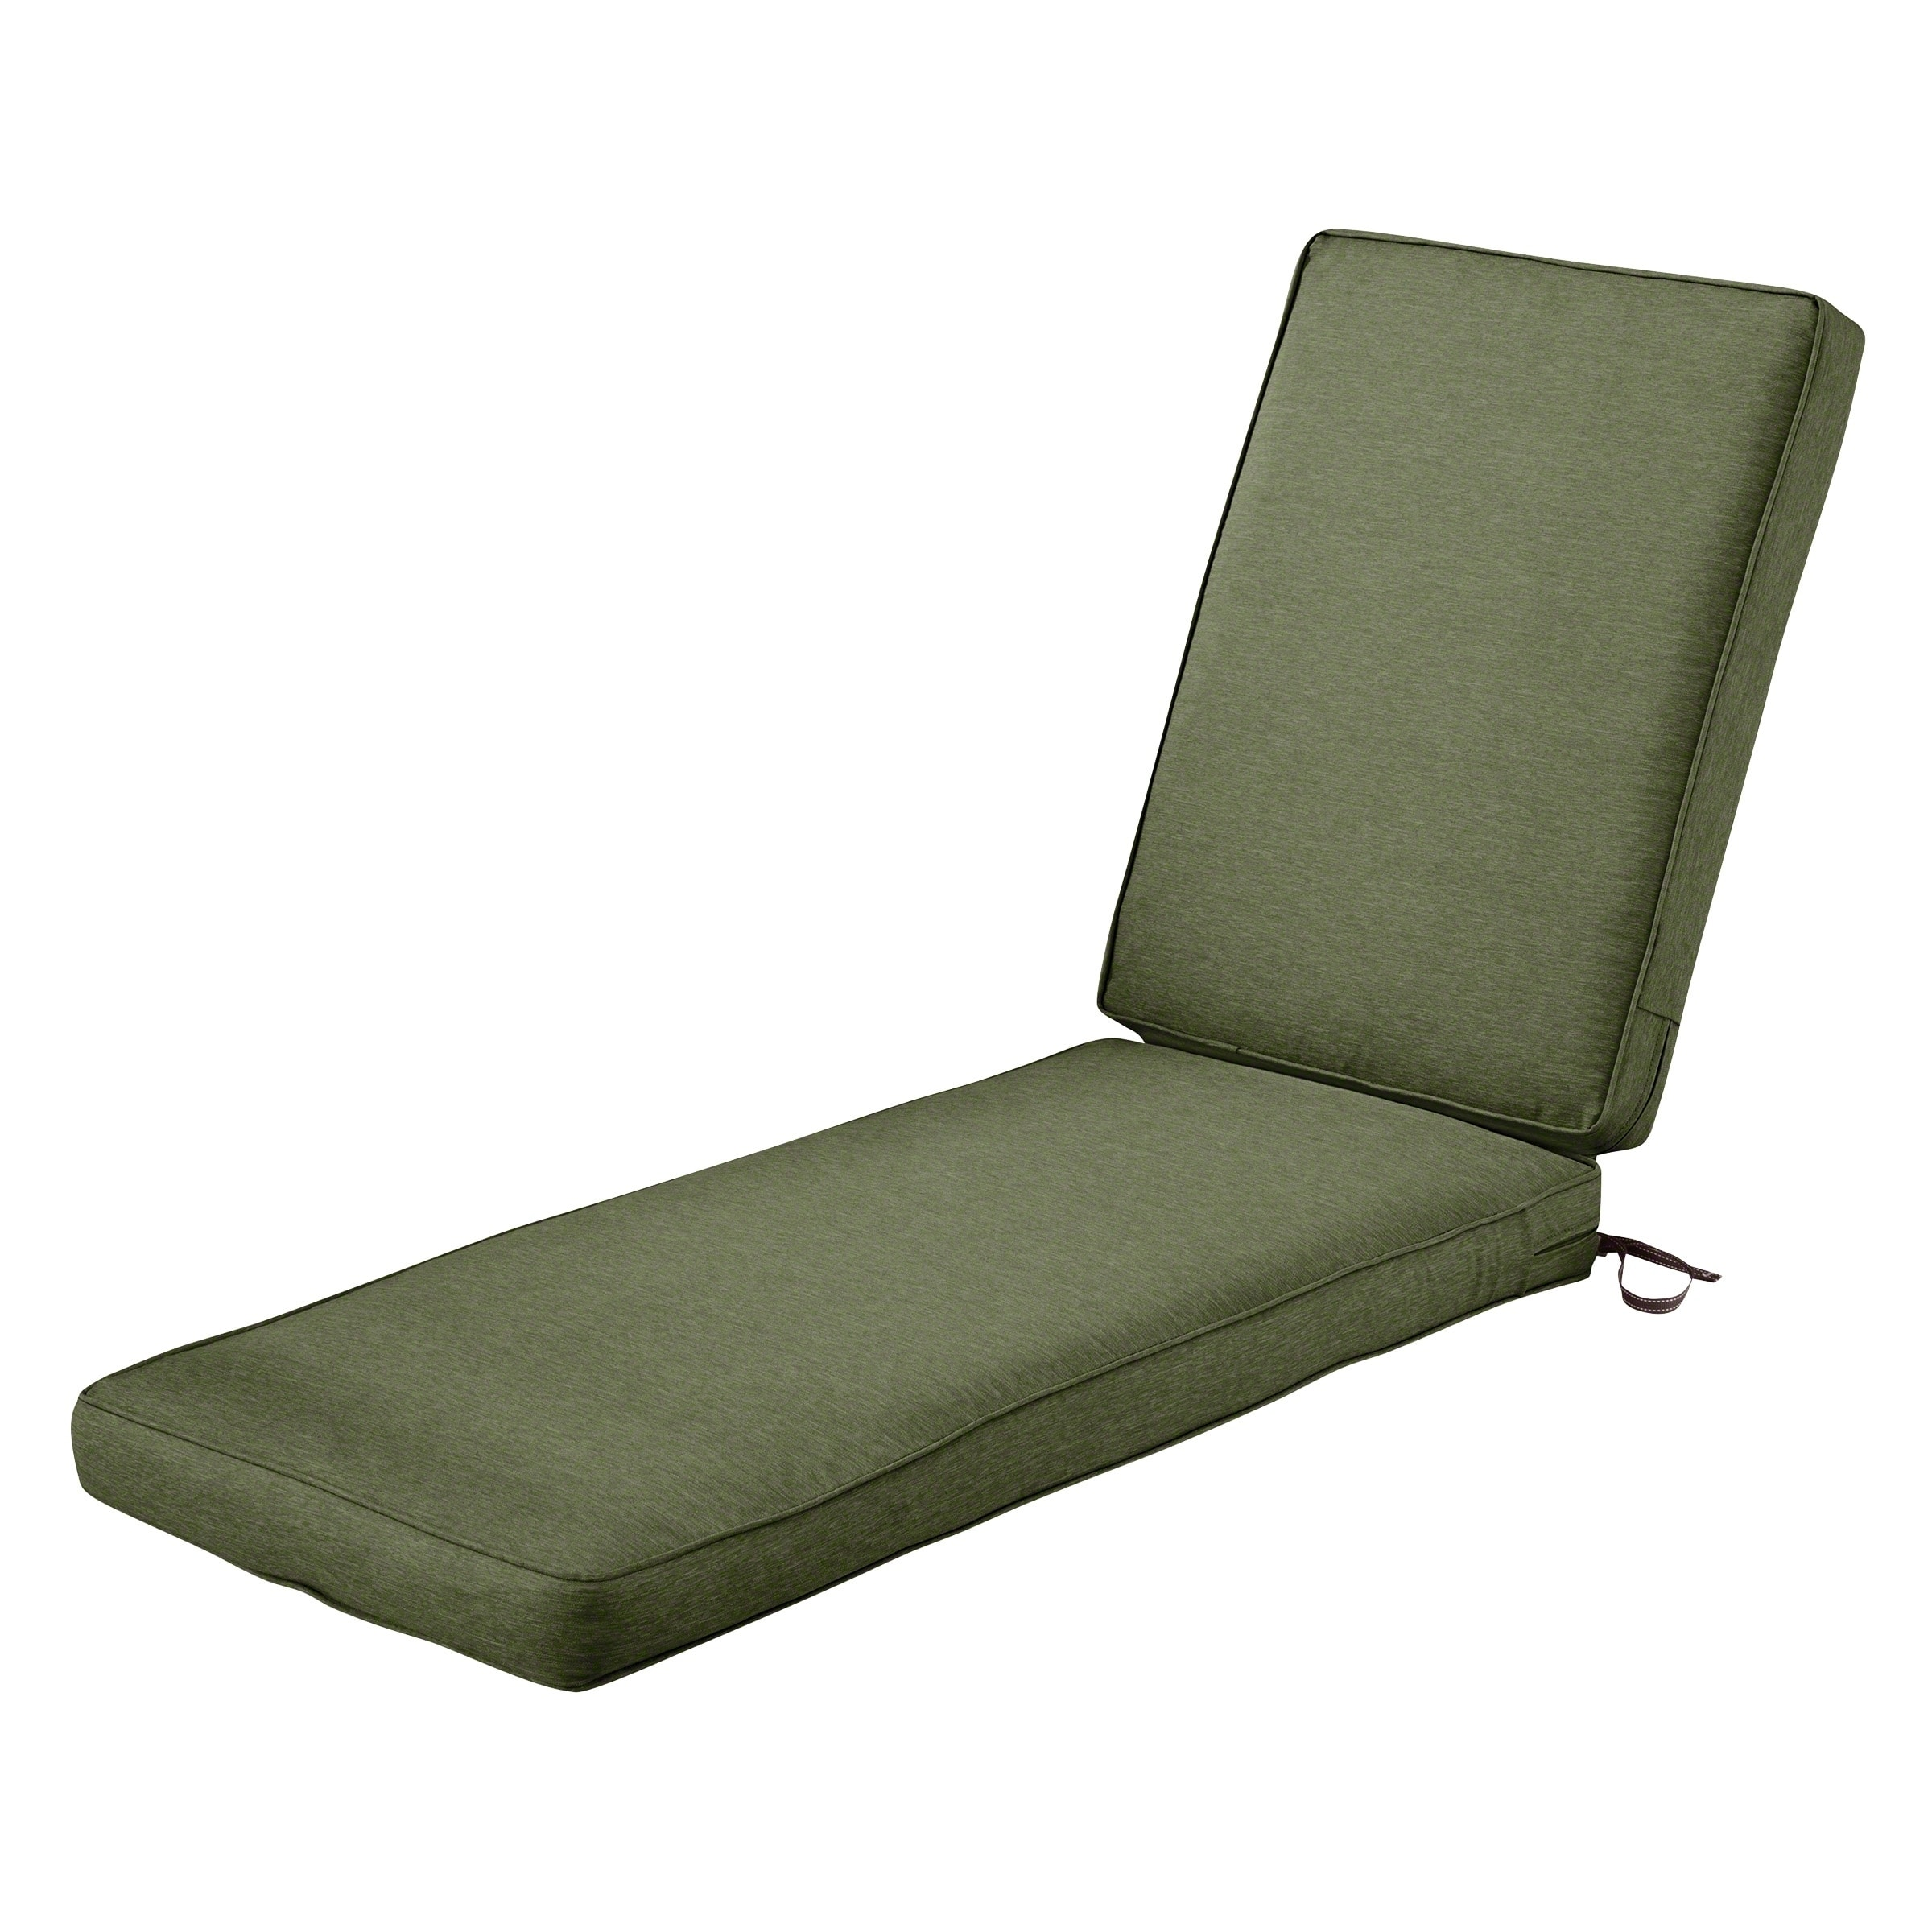 lowes cushion p lounge replacement chair bcfe enchanting outdoor chaise cushions on furniture chairs in sunbrell patio